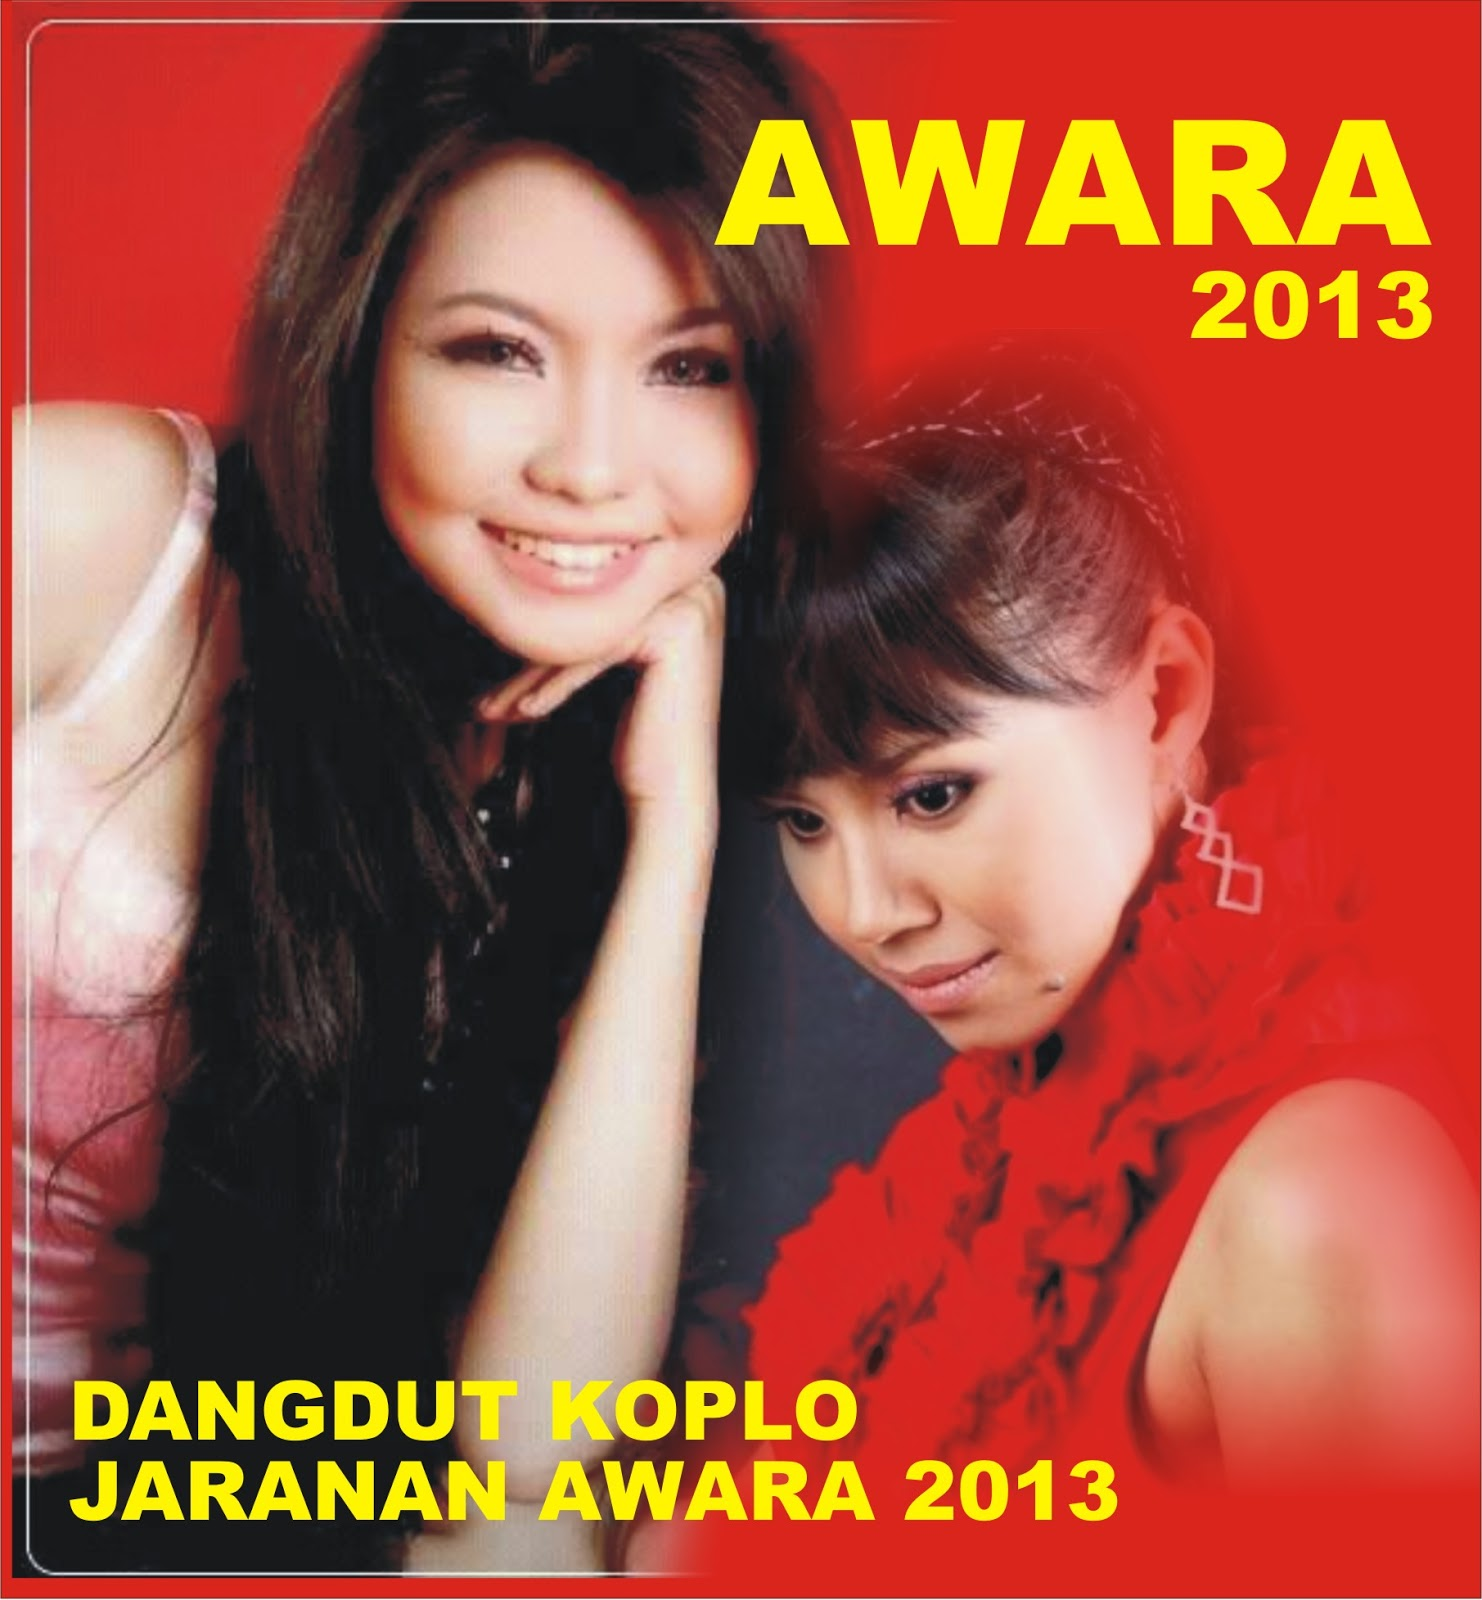 download dangdut koplo jaranan awara 2013 mp3 free